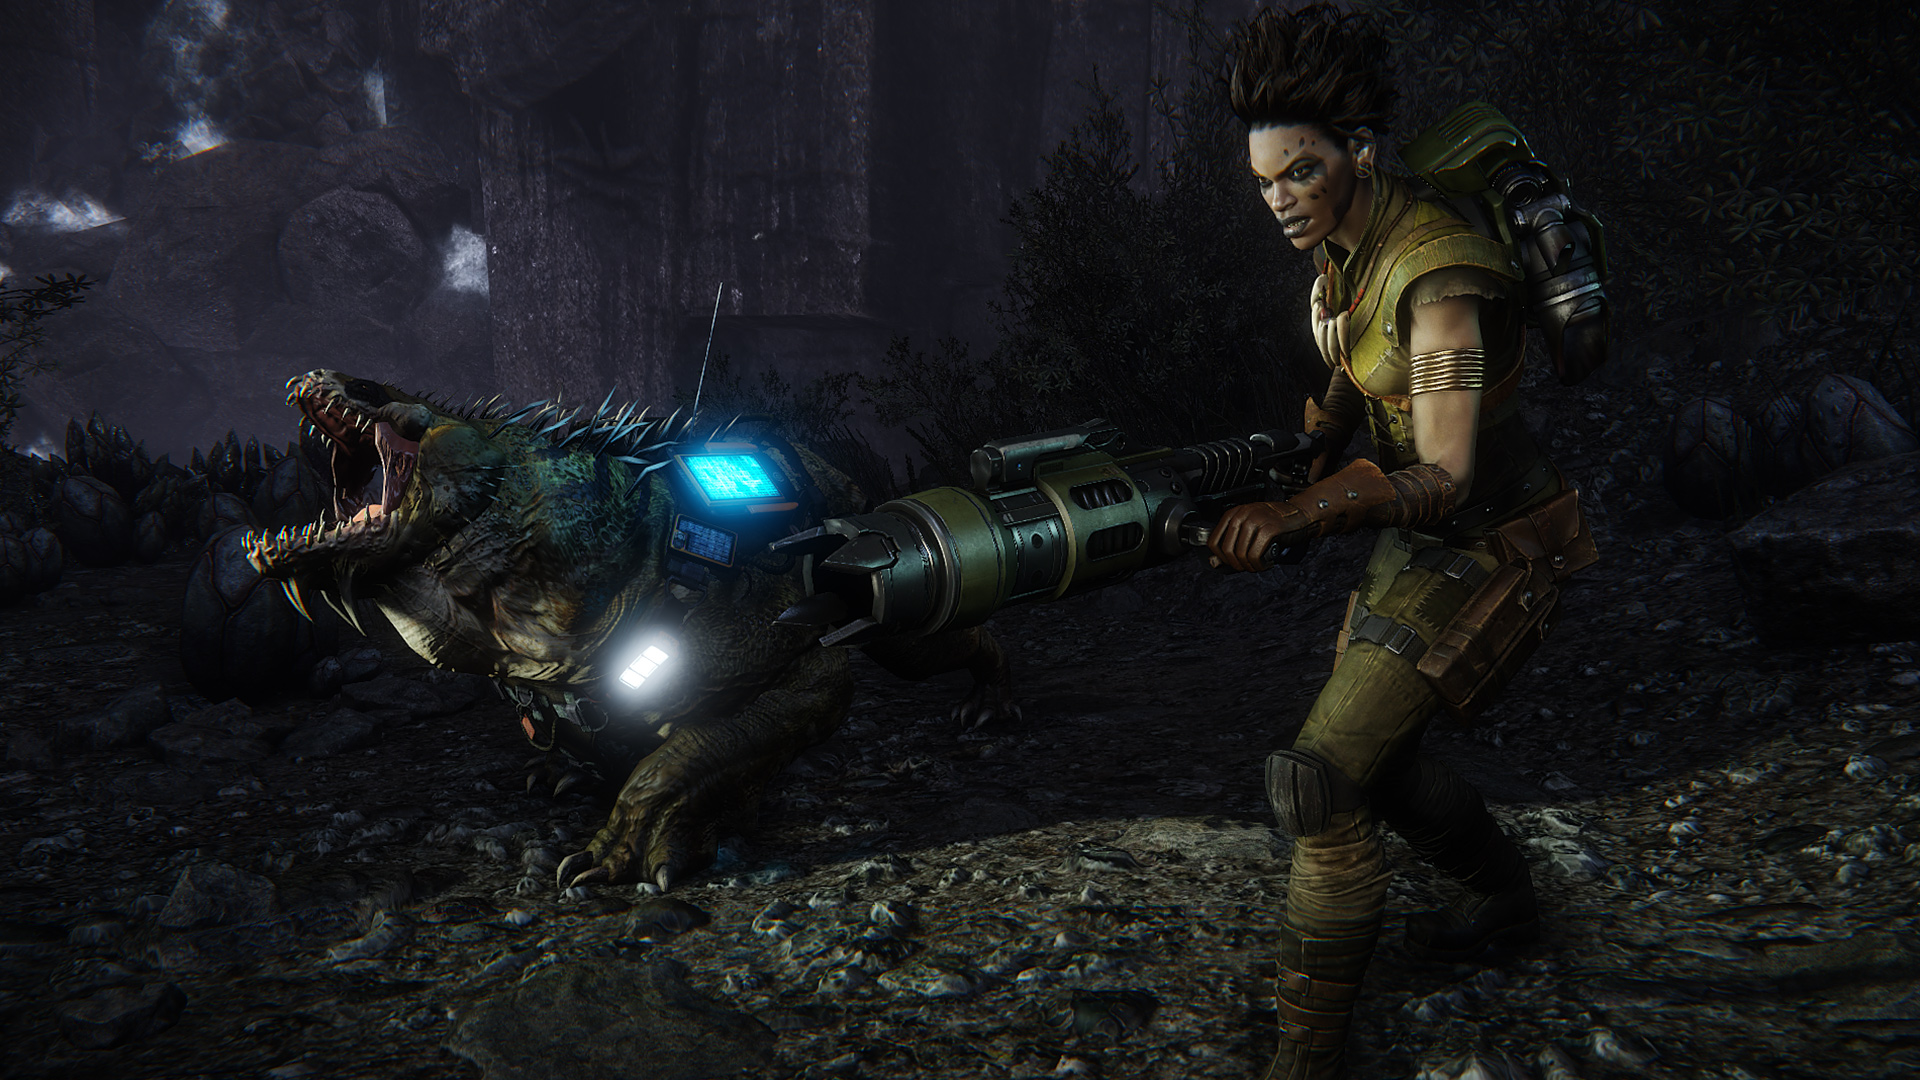 Become the hunter in Evolve, starting today